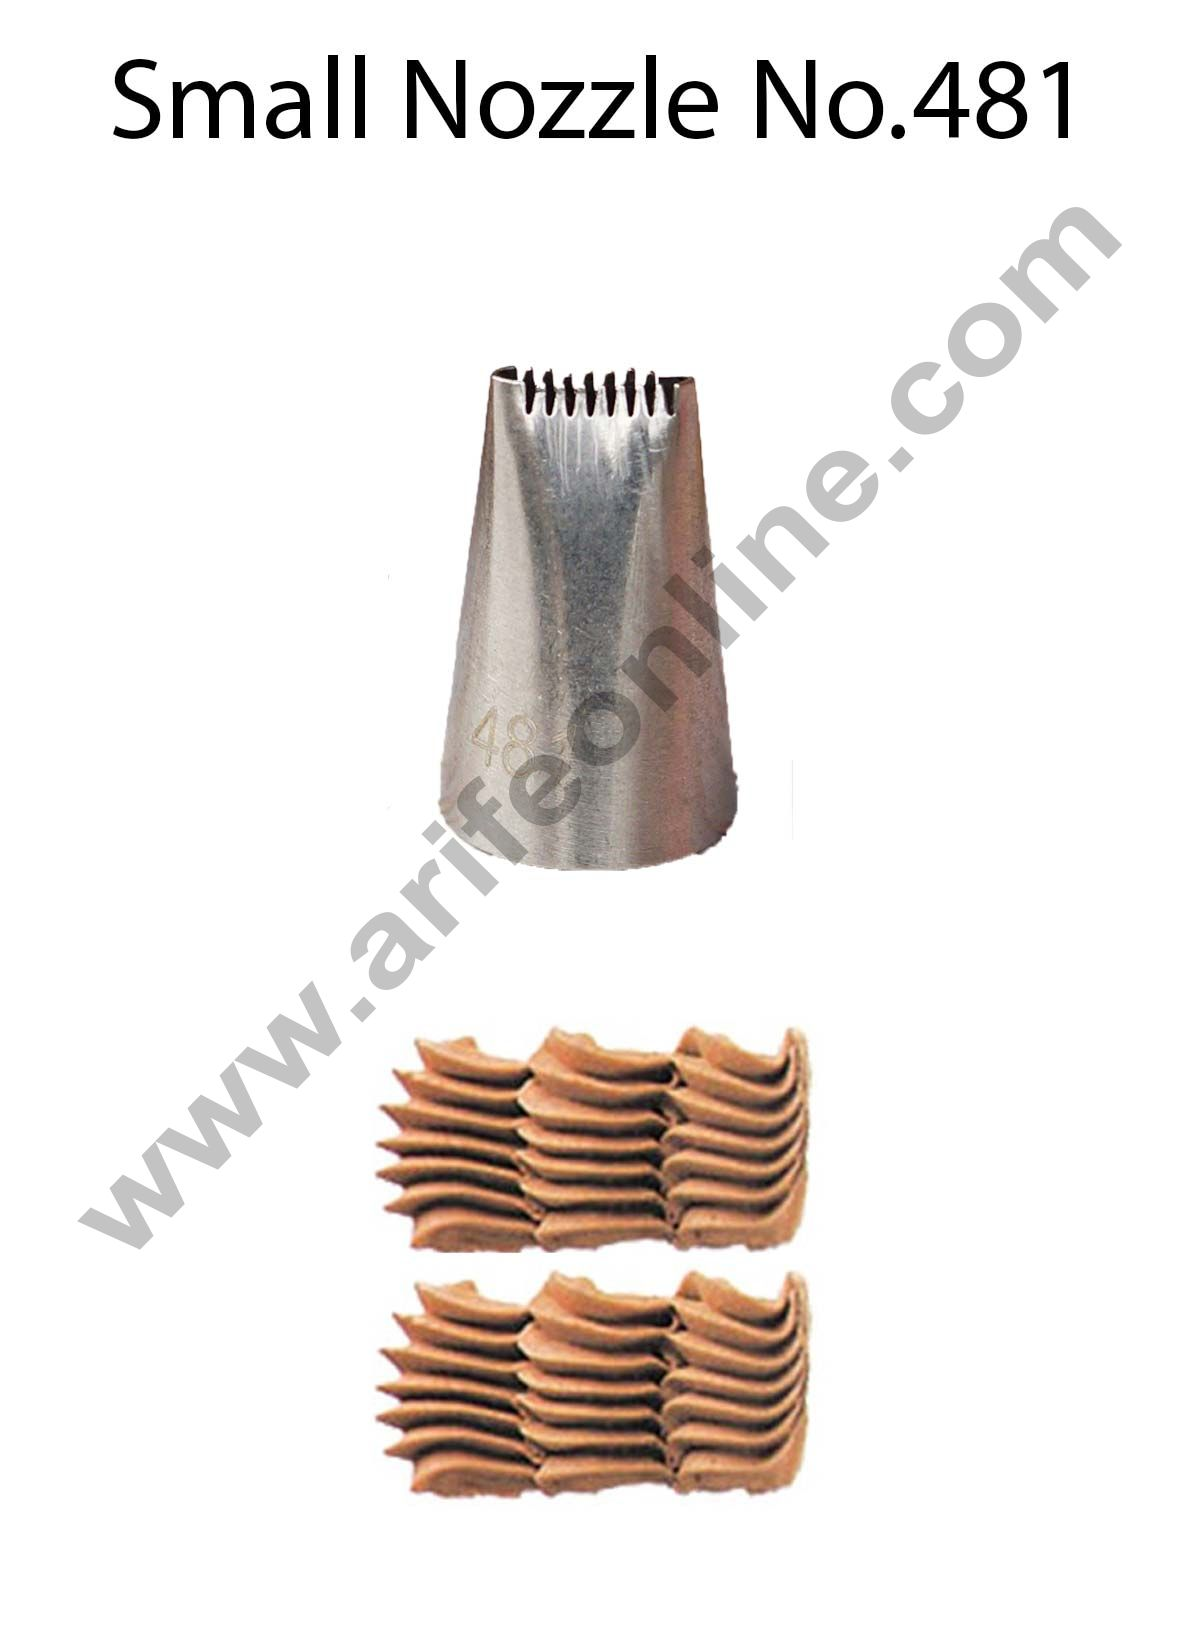 Cake Decor Small Nozzle - No. 481 Basketweave Piping Nozzle